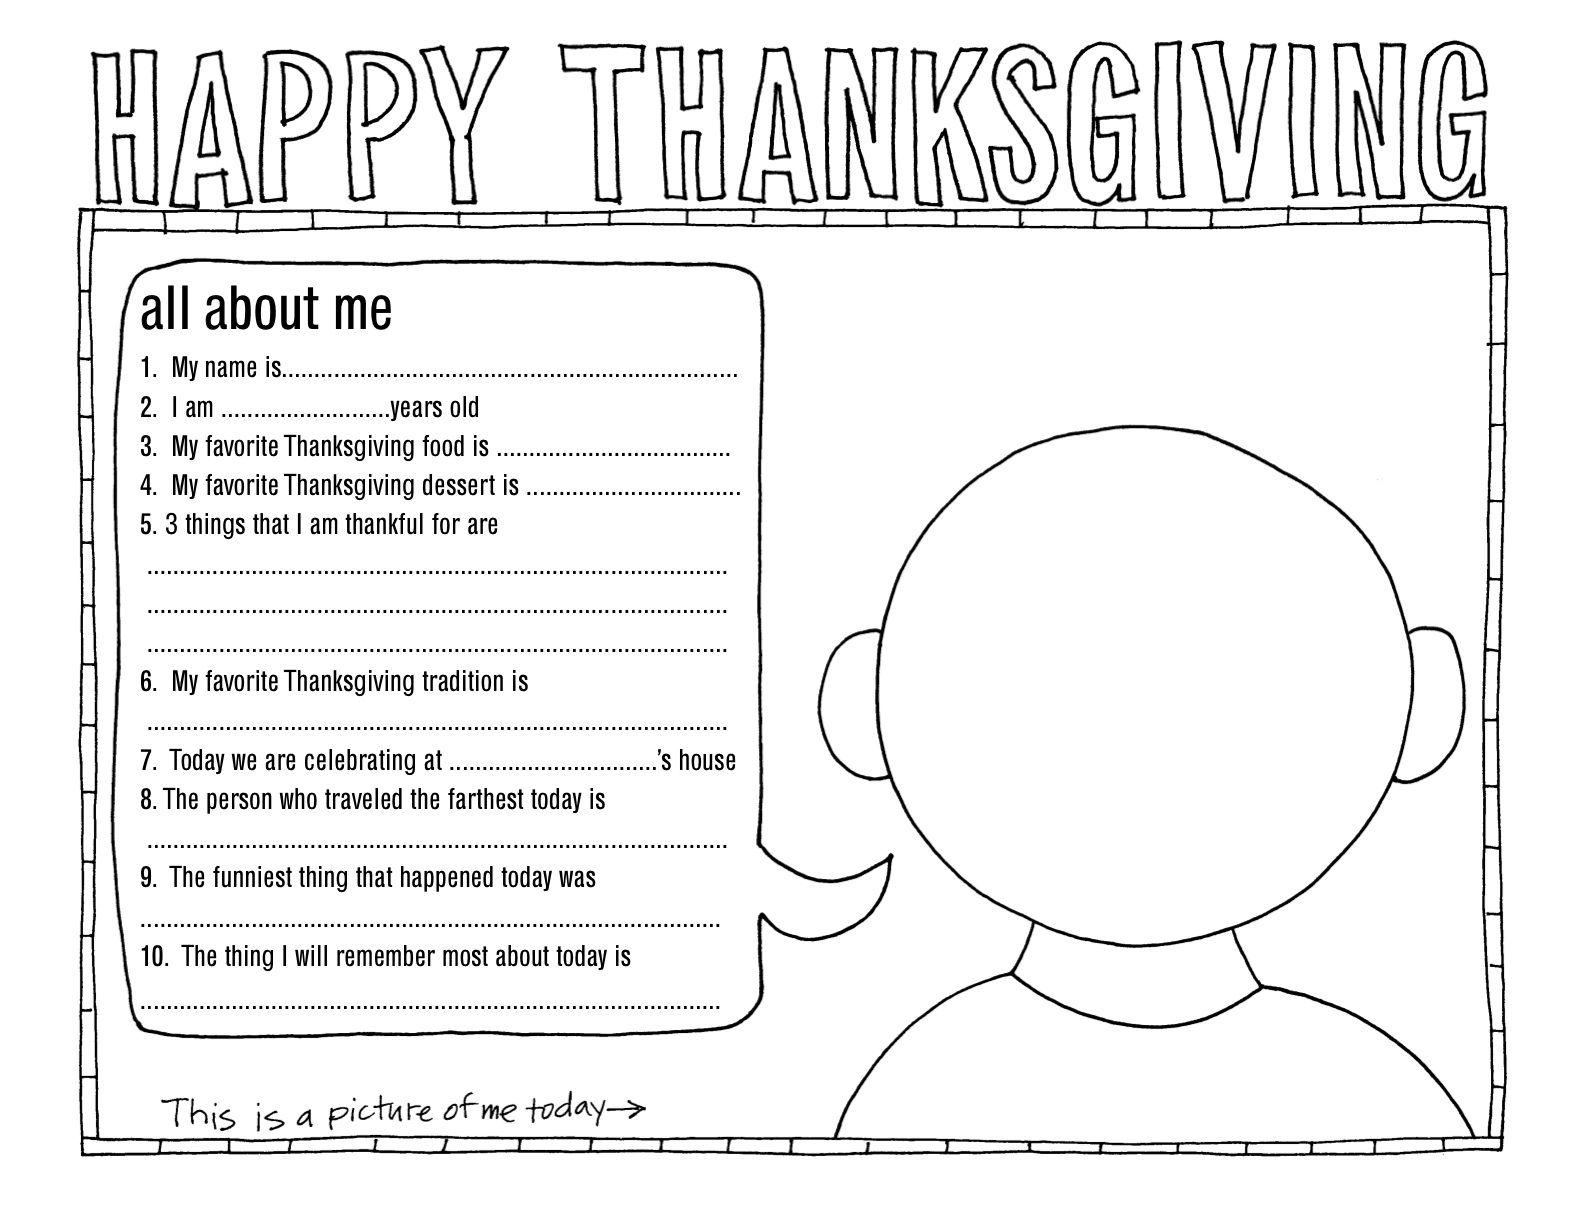 Better homes u gardens thanksgiving placemat all about me even